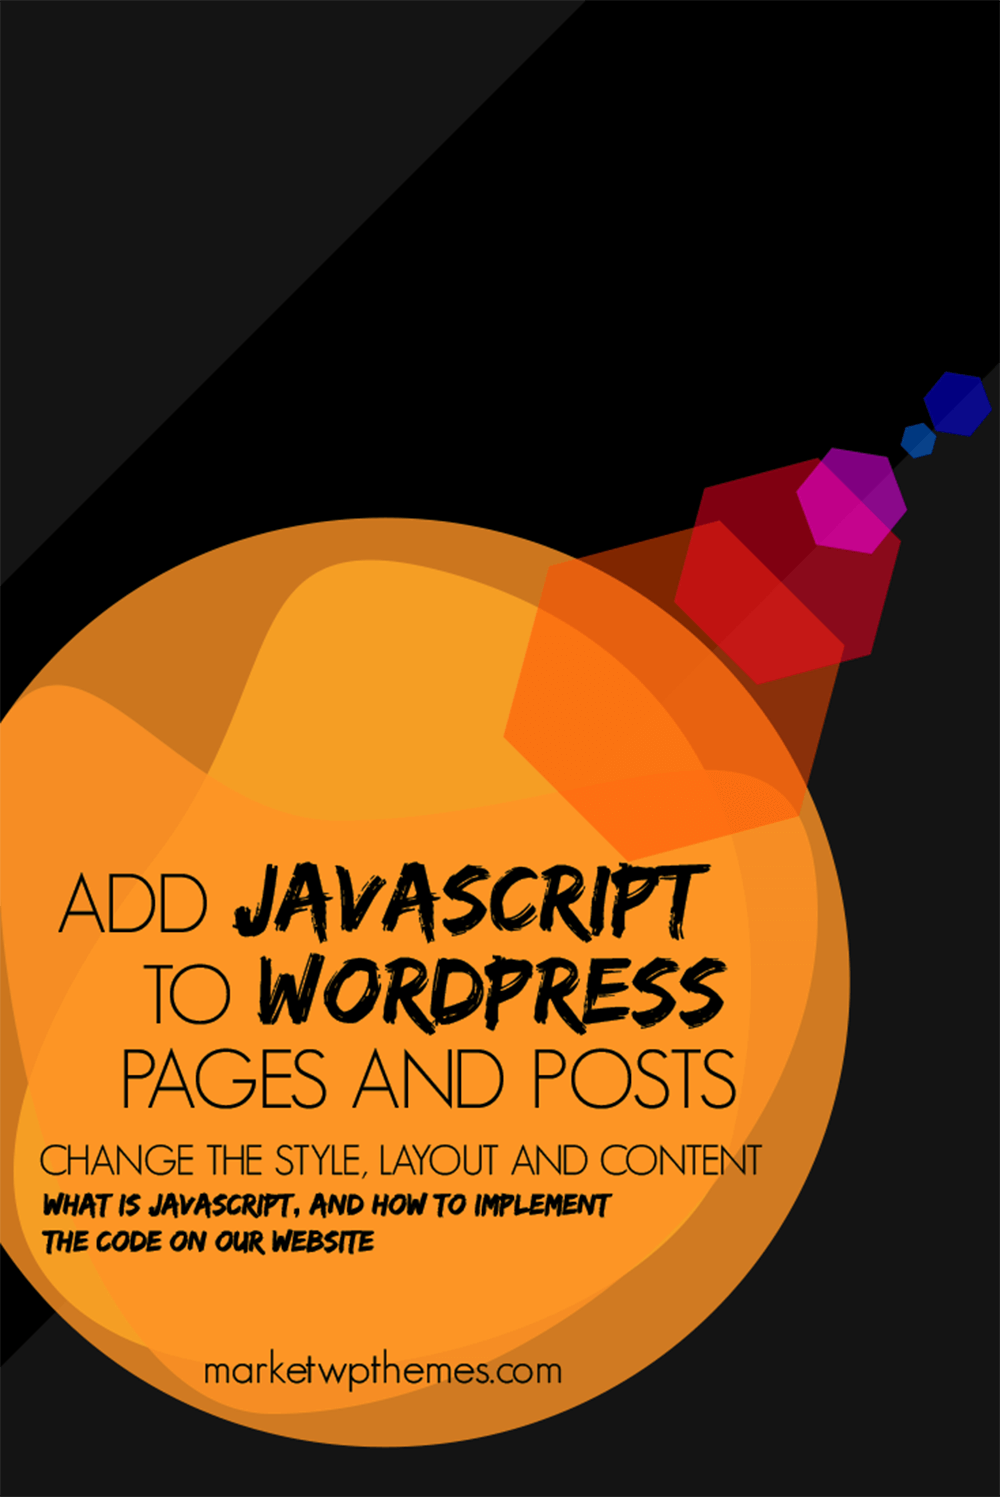 Add JavaScript To WordPress Pages And Posts